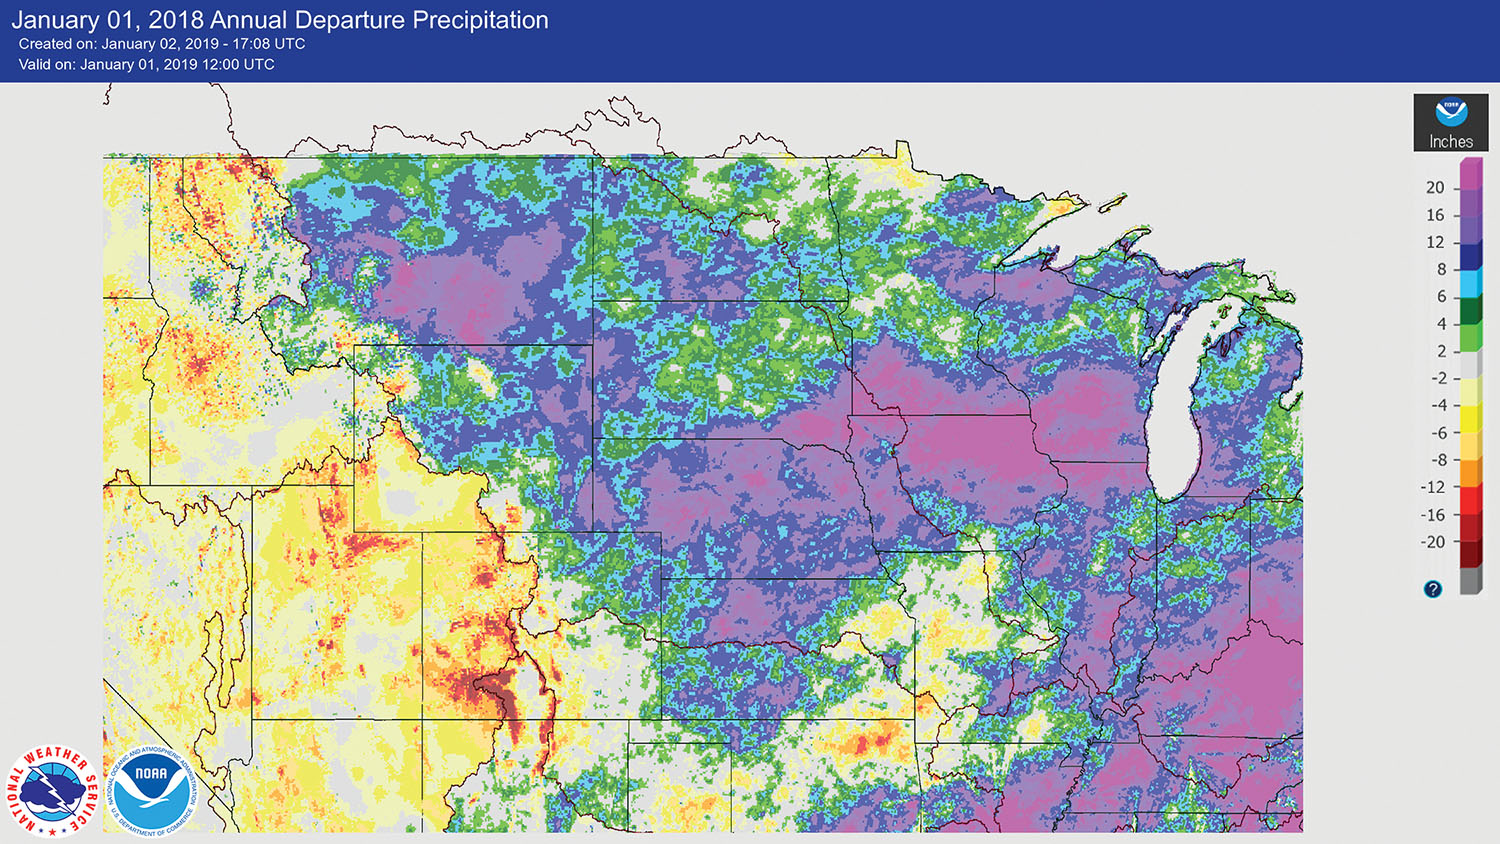 Map shows the departure from normal for annual rainfall in the Missouri River basin. For Yankton and Sioux Falls, S.D., 2018 was the wettest year on record. The Big Sioux, Elkhorn, Floyd, James, and Niobrara rivers and the Missouri River downstream from Gavins Point Dam—where flows are unregulated by dams—saw annual precipitation 8 to 20 inches above normal. (—image courtesy of National Weather Service water.weather.gov)